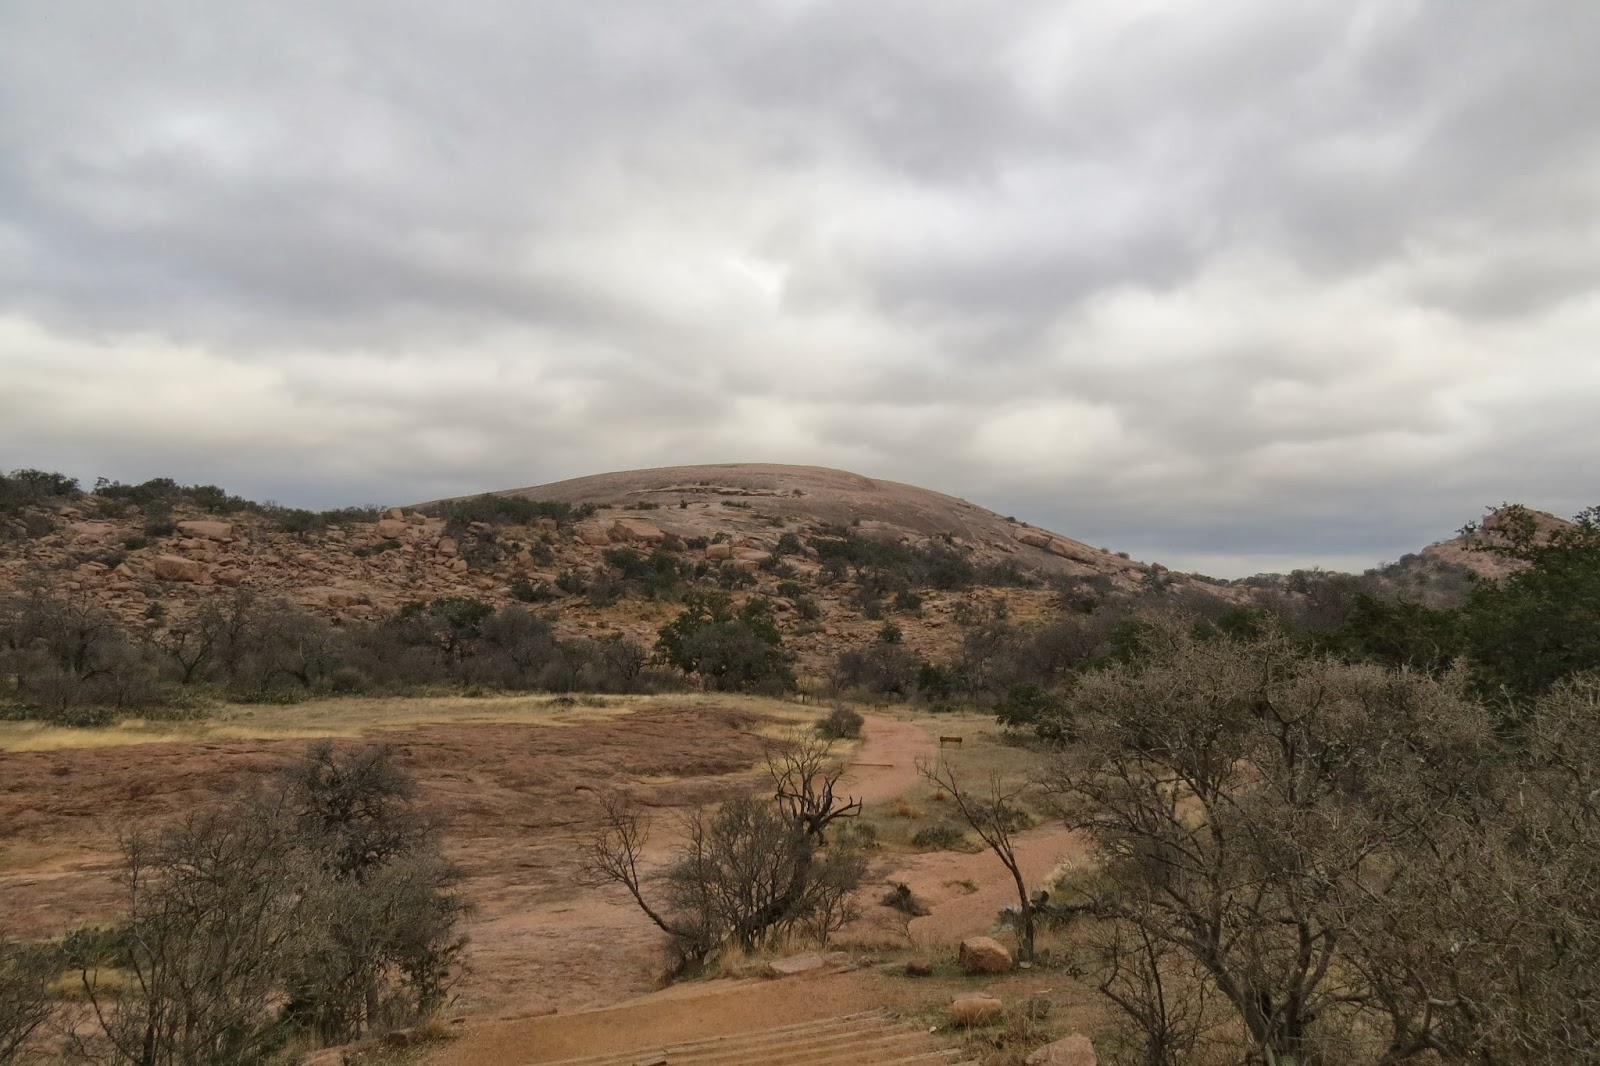 Enchanted Rock State Park, Texas - a large granite batholith